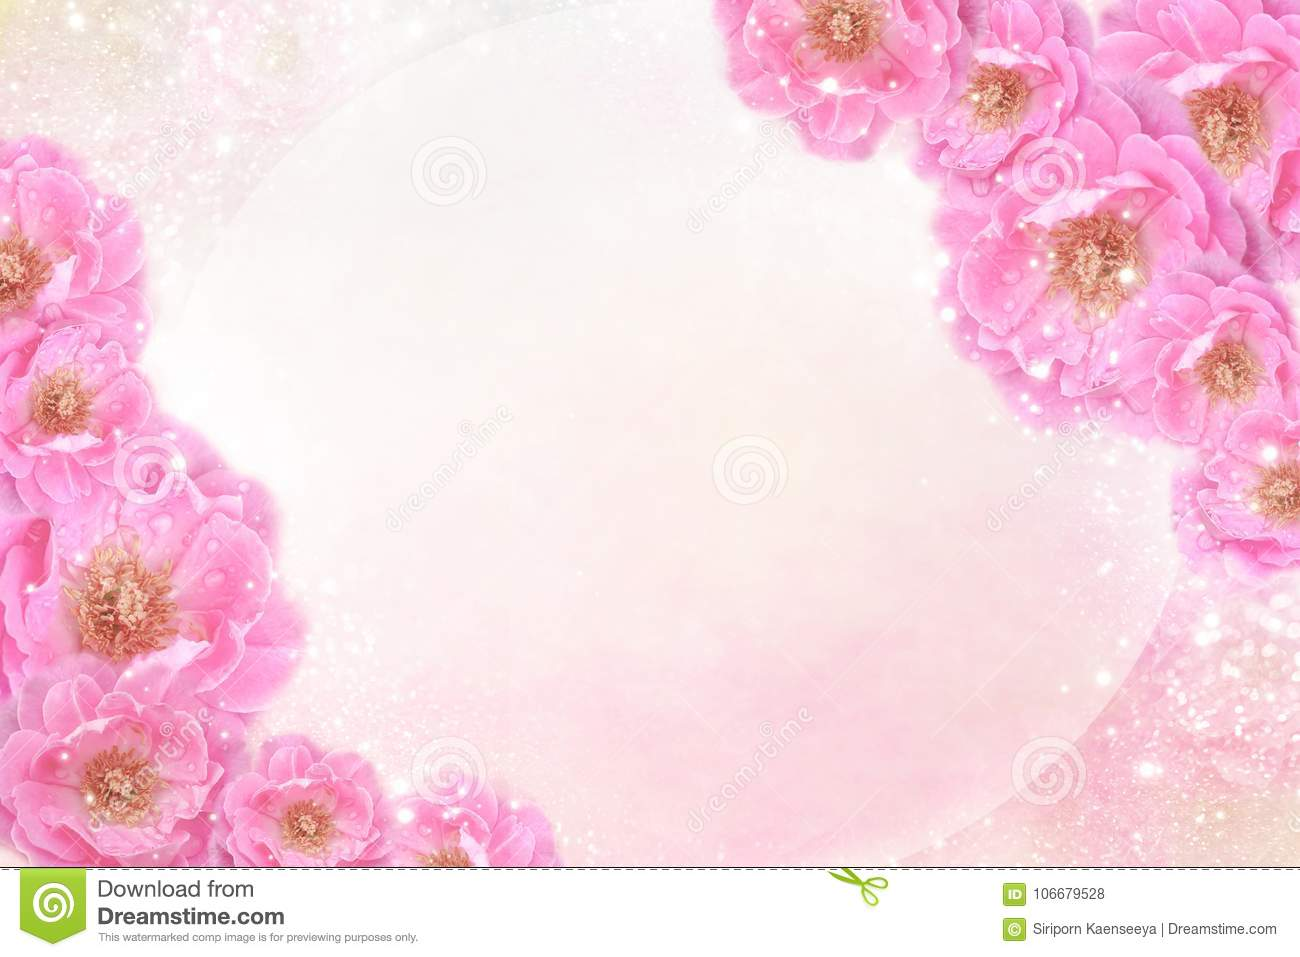 Romantic pink roses flower border on soft glitter background for valentine or wedding card in pastel tone